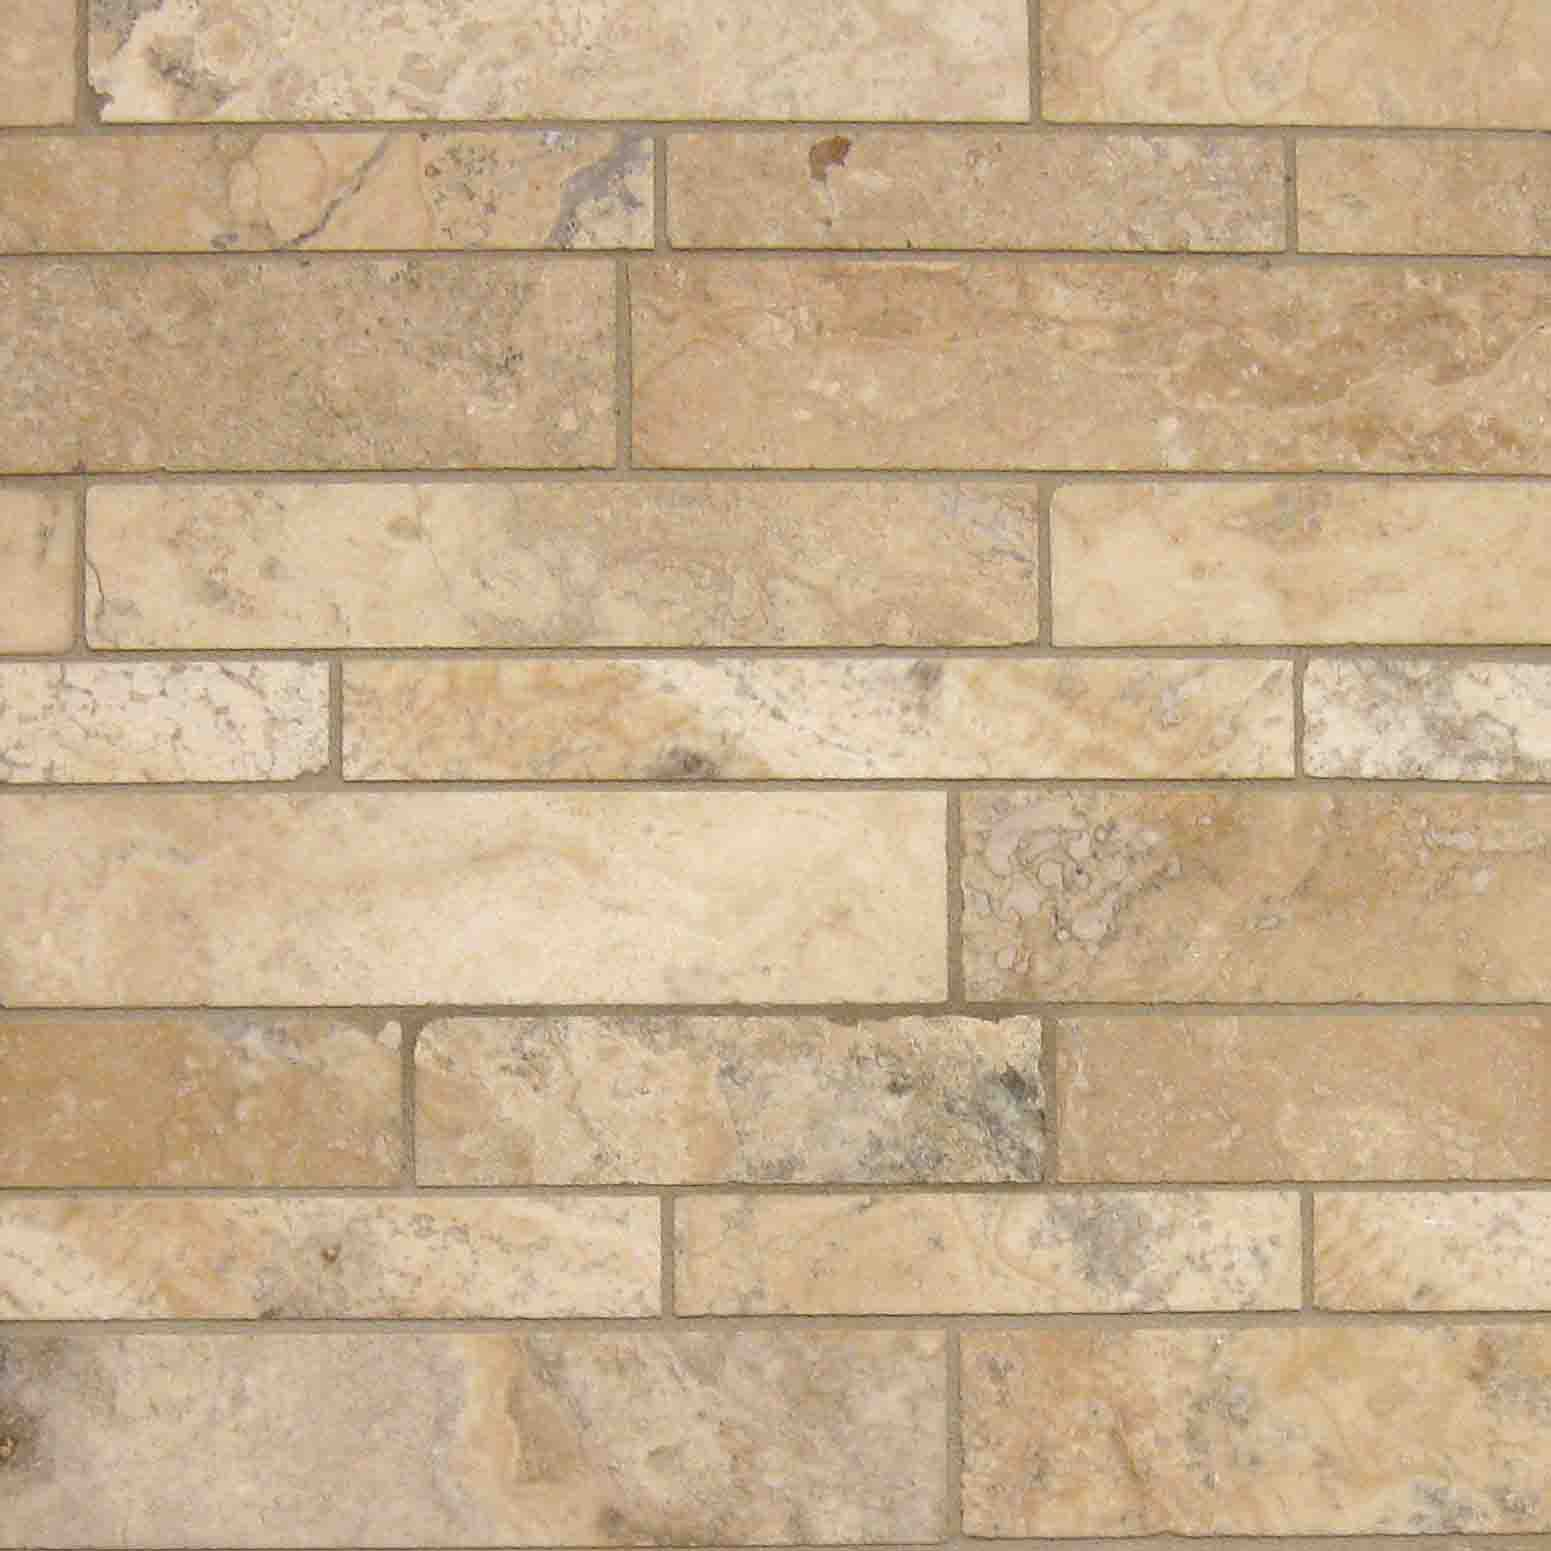 Backsplash Mirrored Wall Travertine Random Mosaic 3 Inch